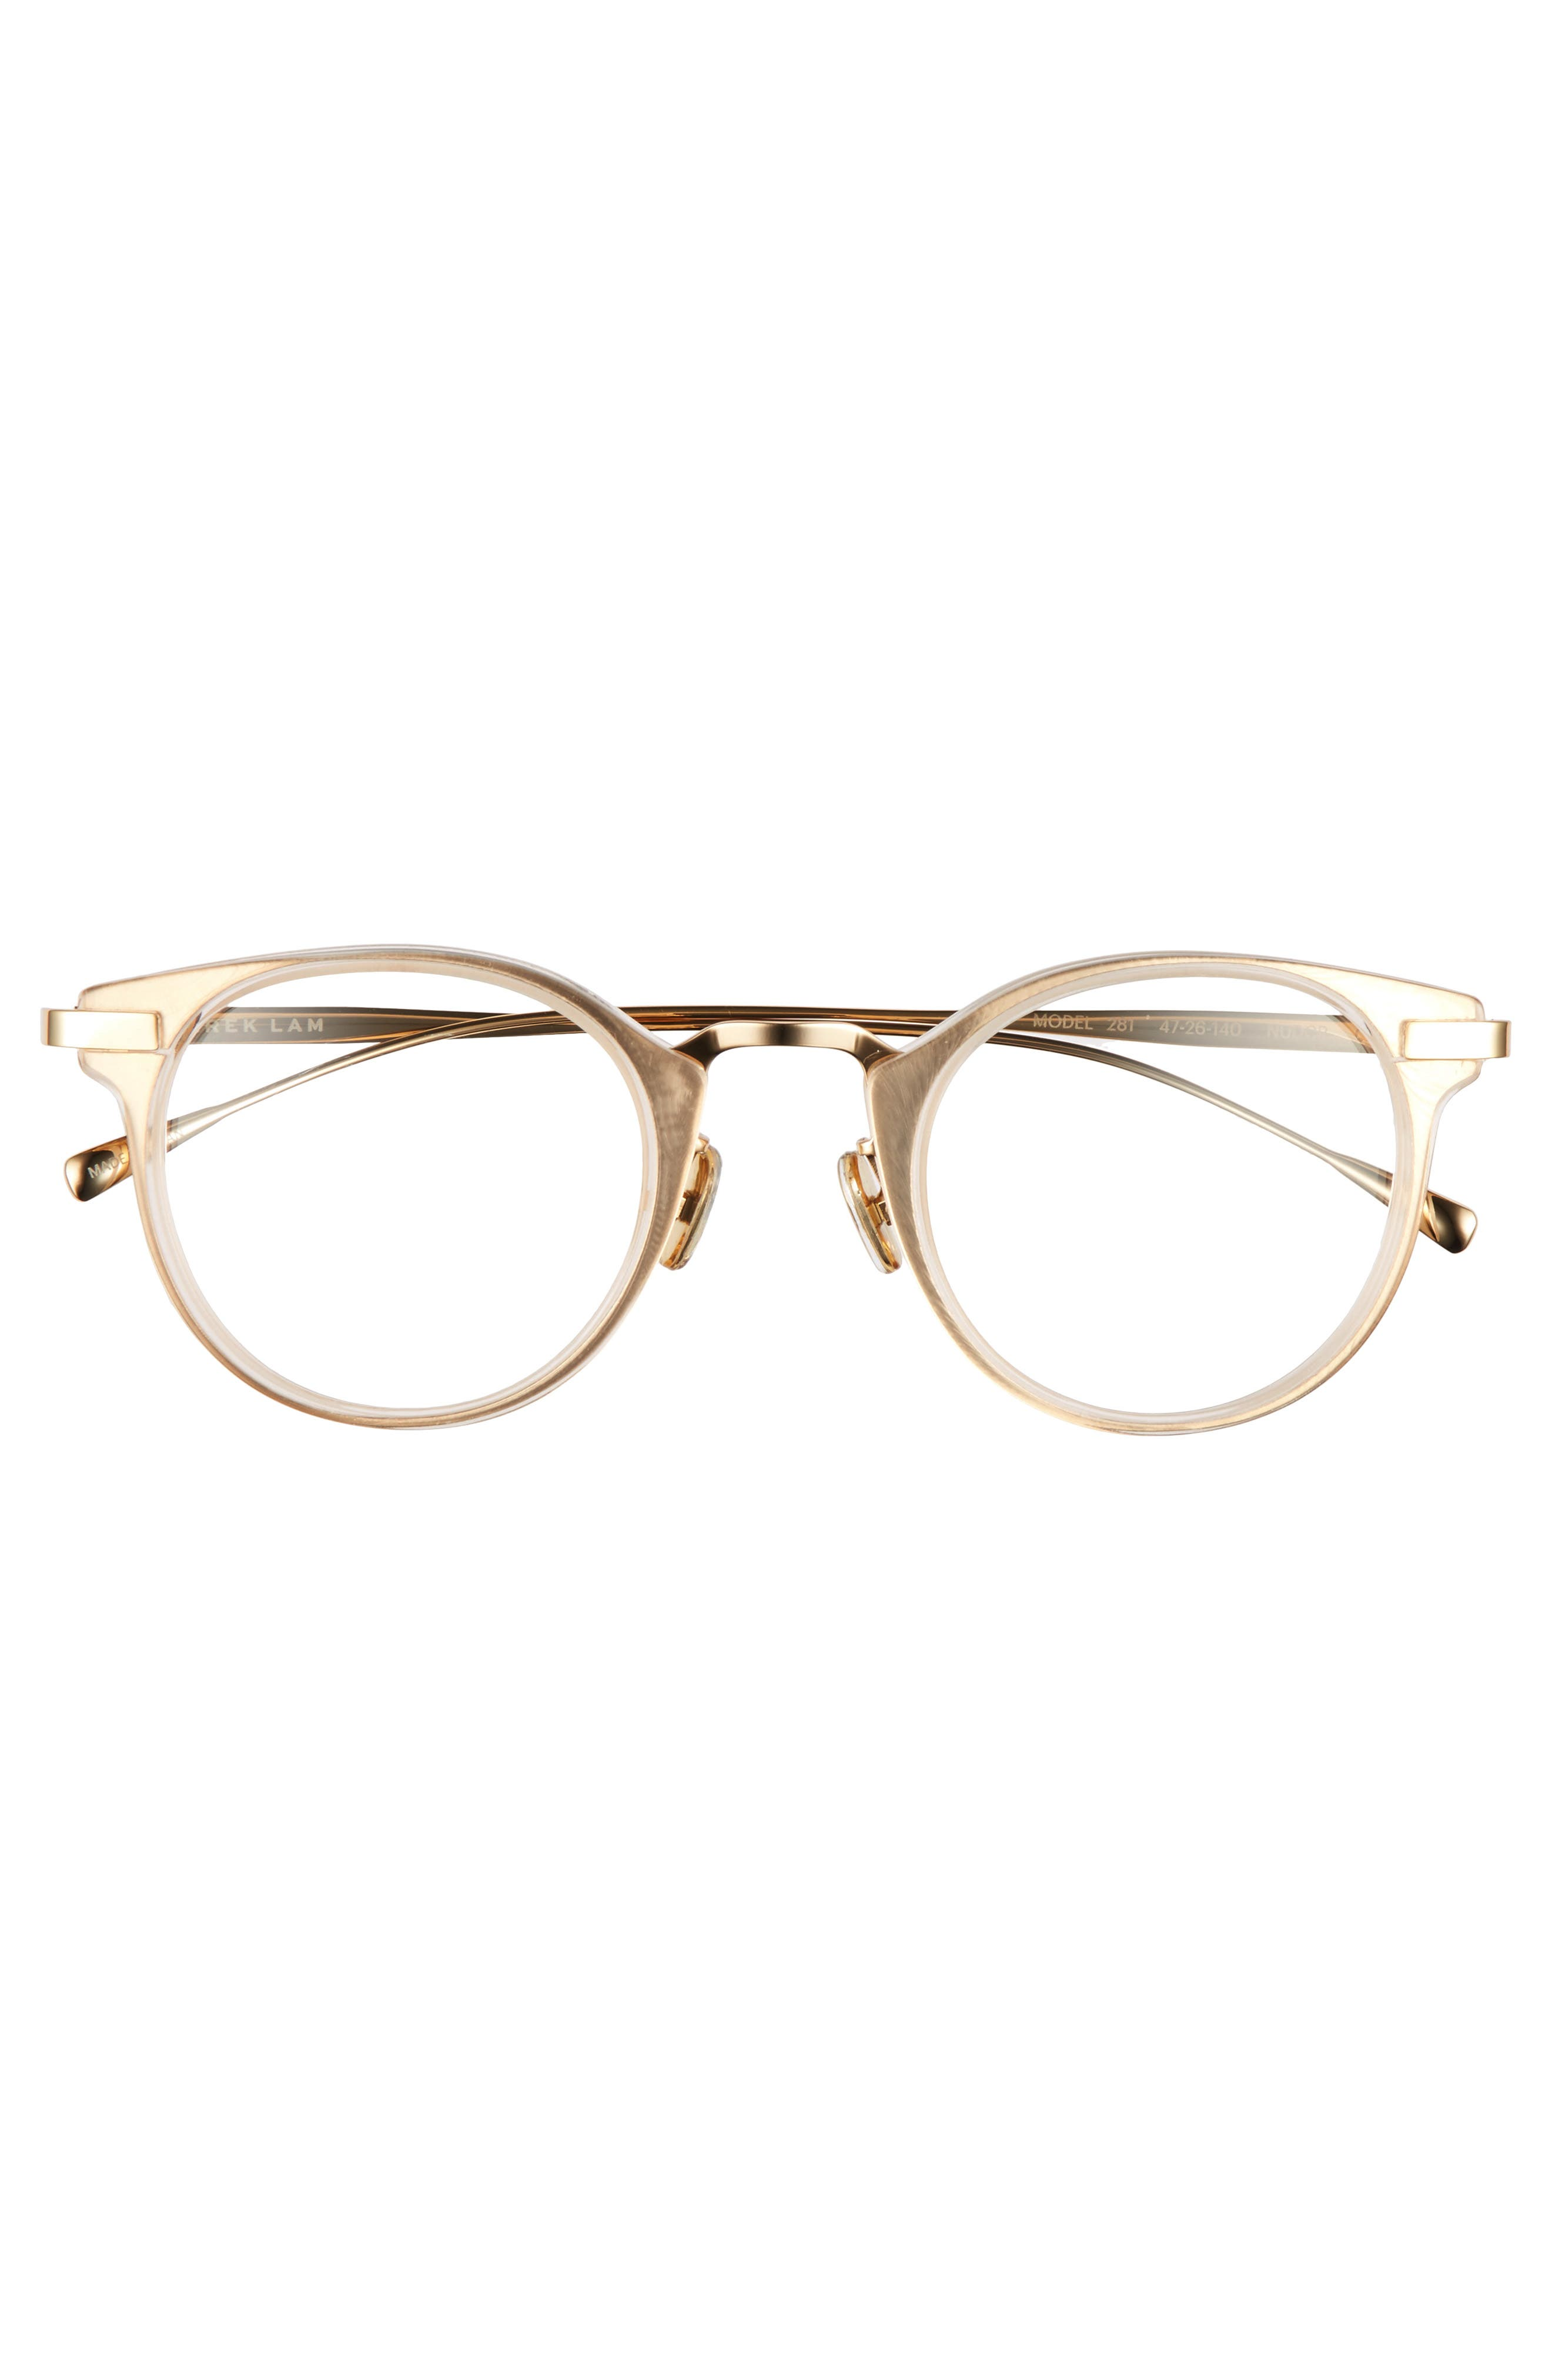 47mm Optical Glasses,                             Alternate thumbnail 3, color,                             NUDE CRYSTAL